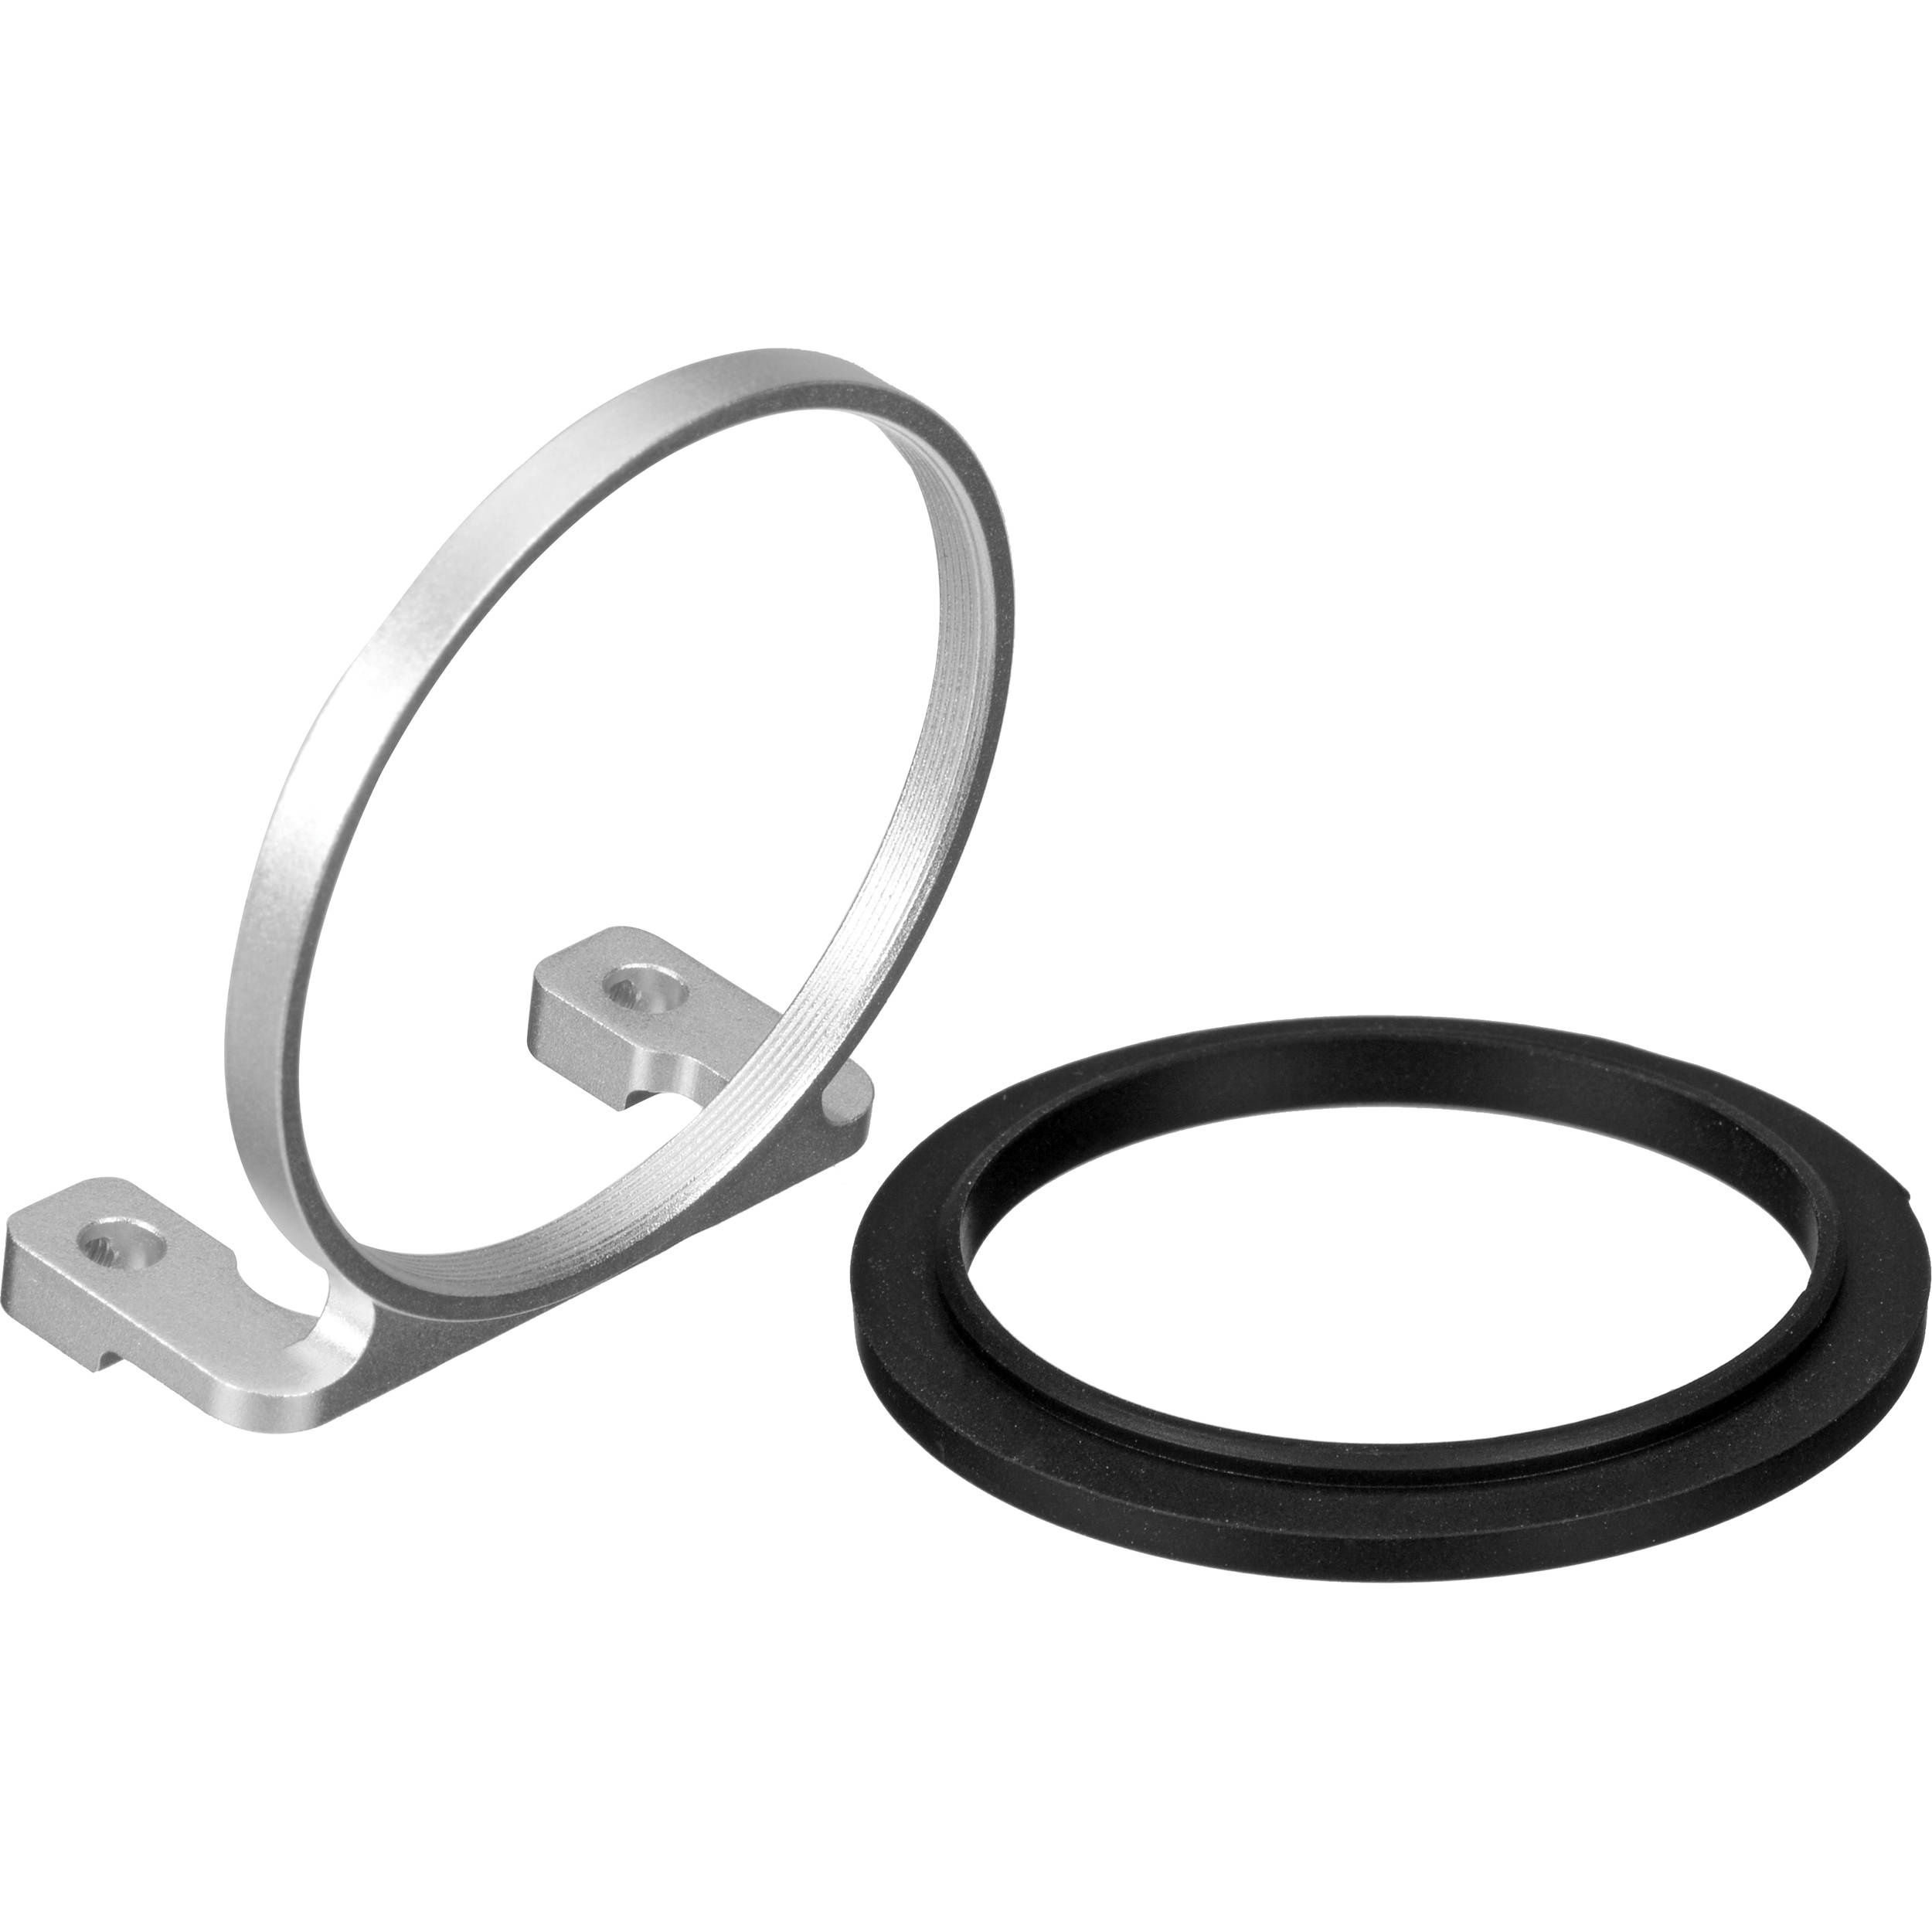 DJI Lens Filter Mounting Kit for Phantom 2 Vision (Part 27)